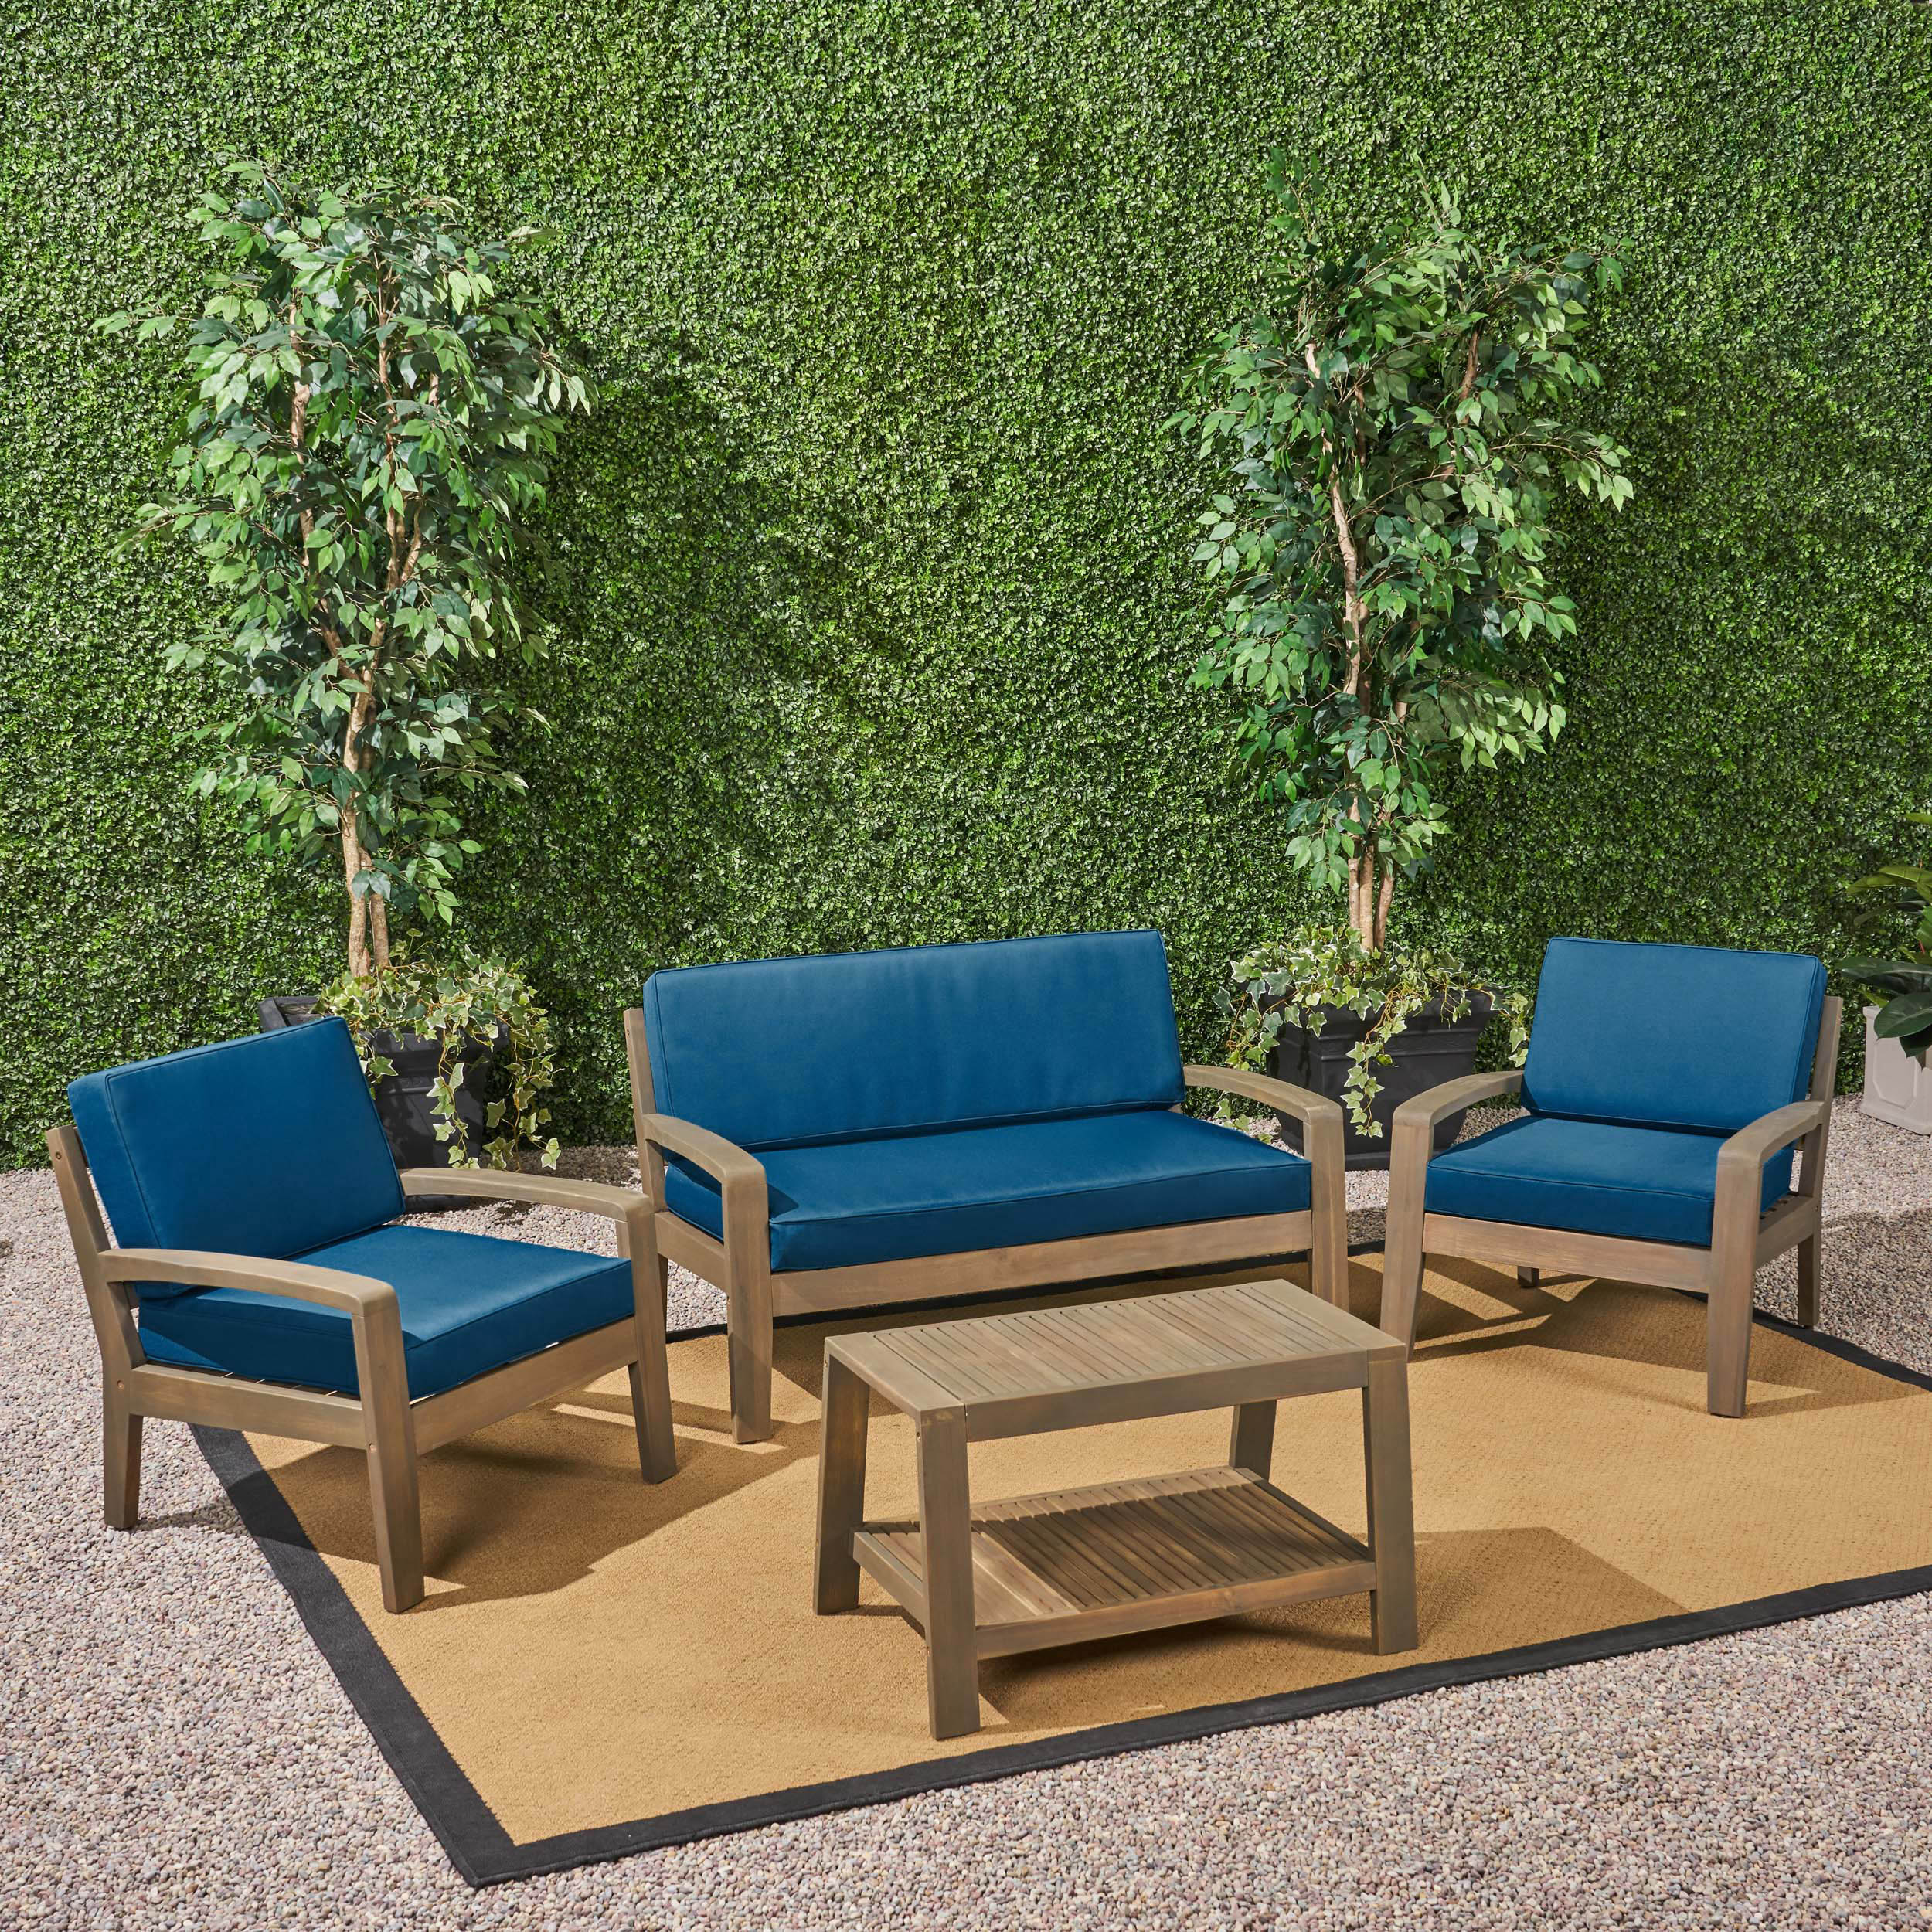 Wilcox Outdoor 4 Piece Acacia Wood Conversation Set with Cushions, Gray, Dark Teal